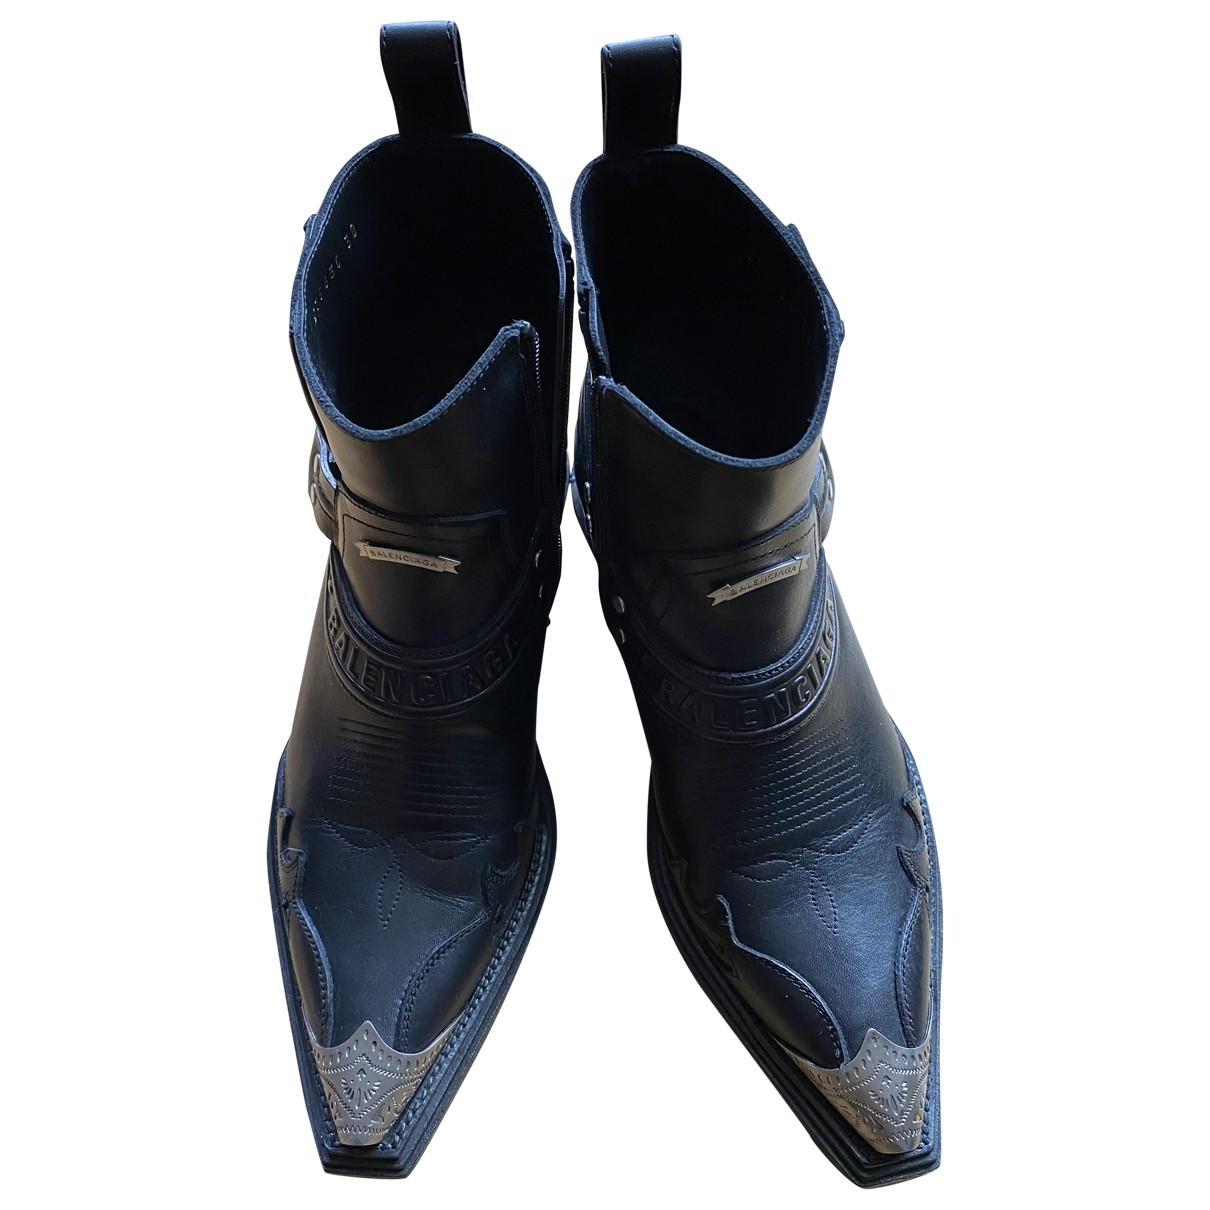 Balenciaga \N Black Leather Boots for Women 38 EU